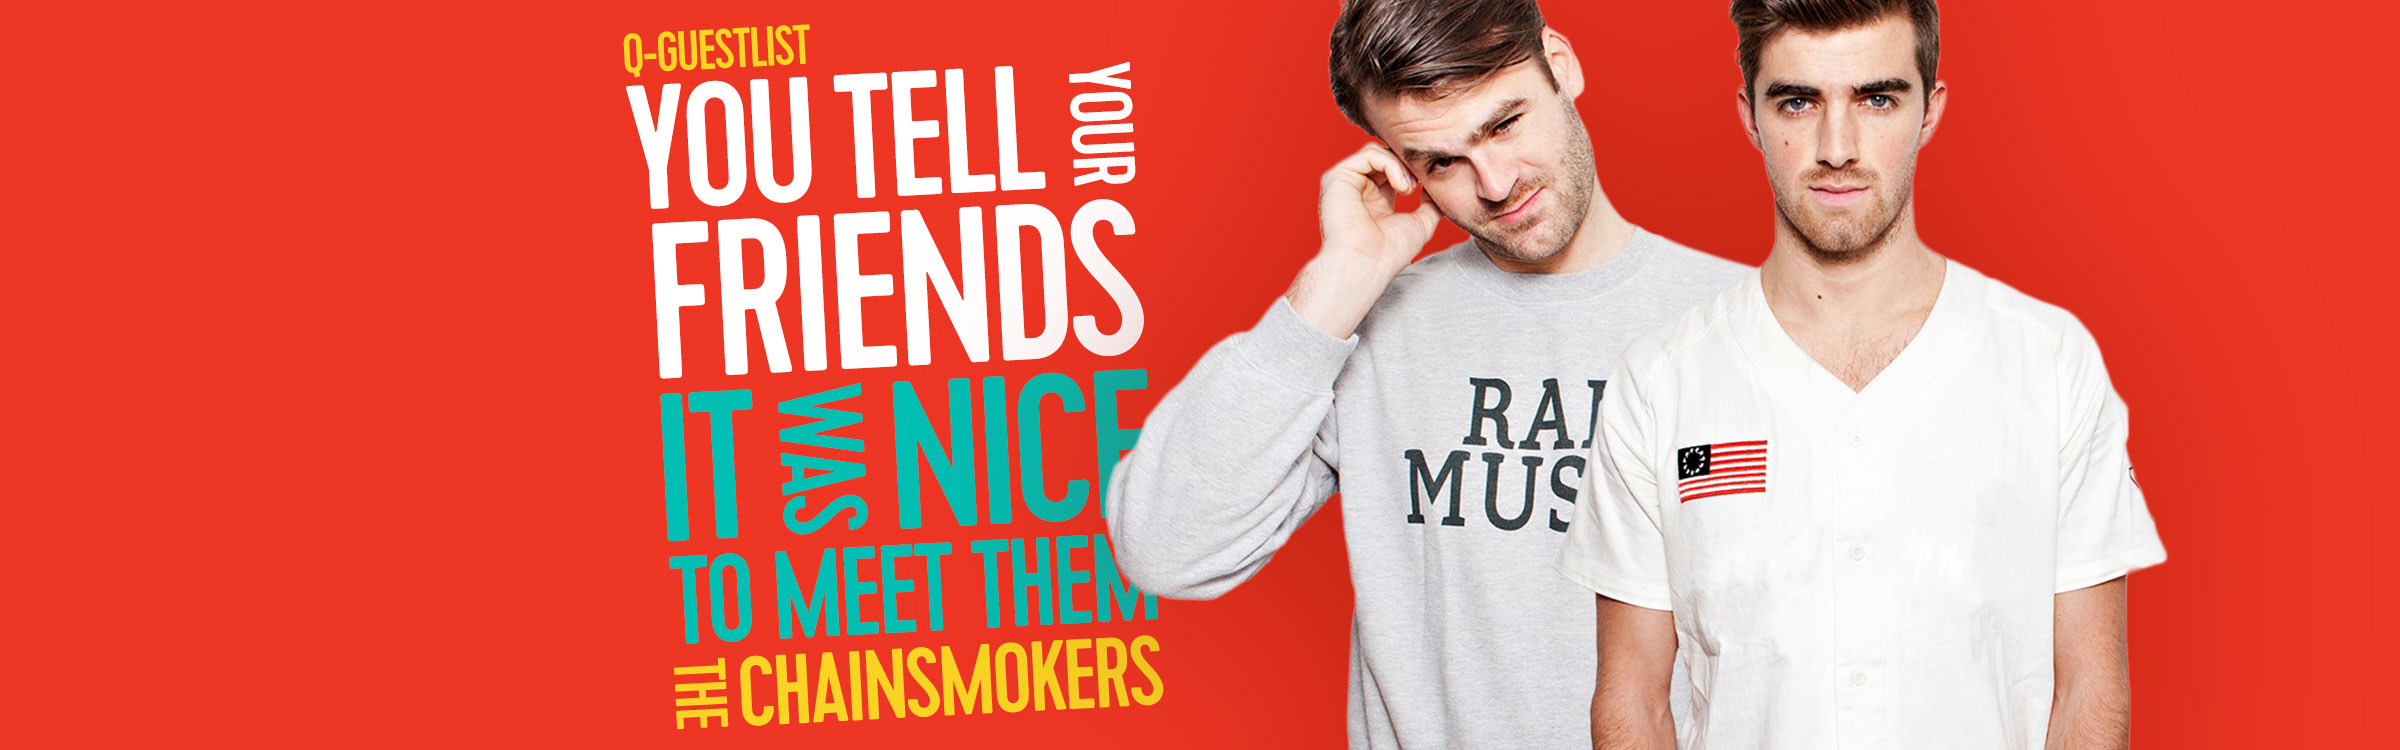 Q 2400x750 gl thechainsmokers